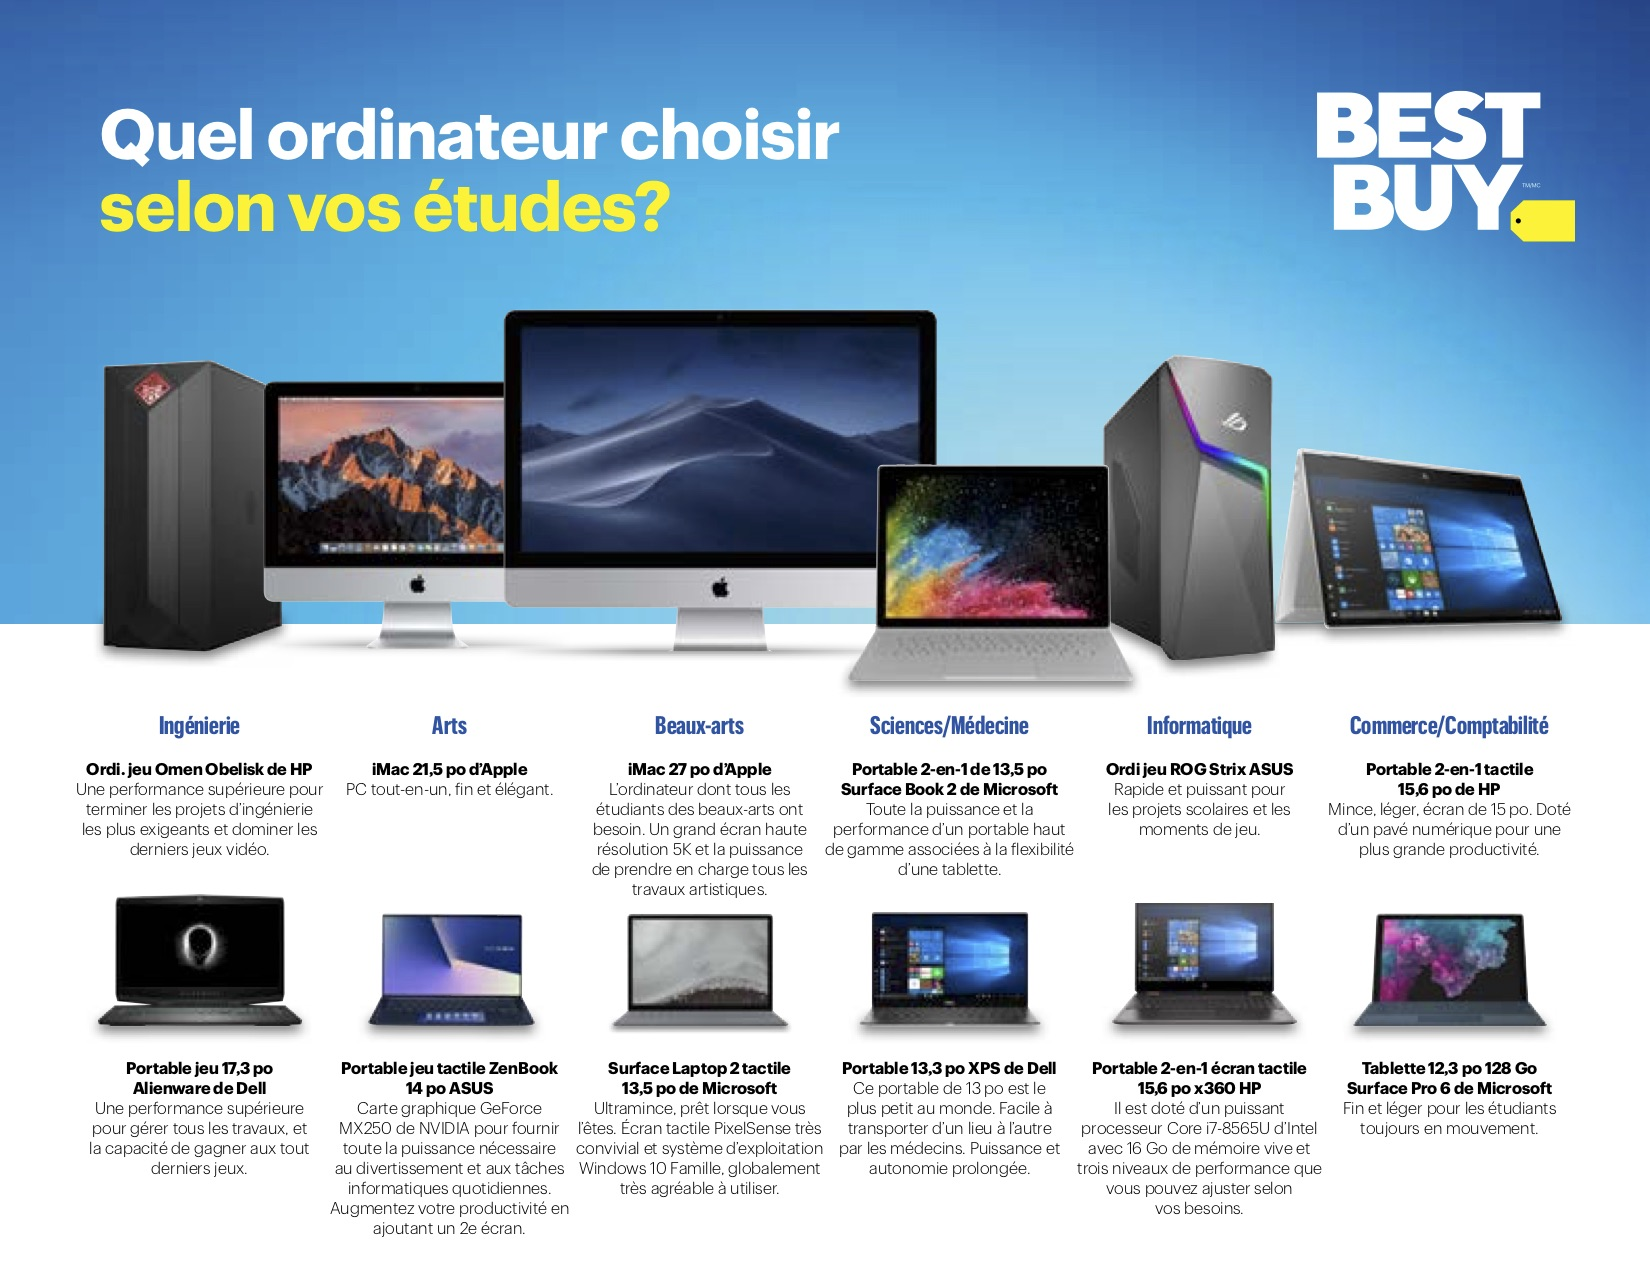 best buy canada laptops ordinateurs portables selon études